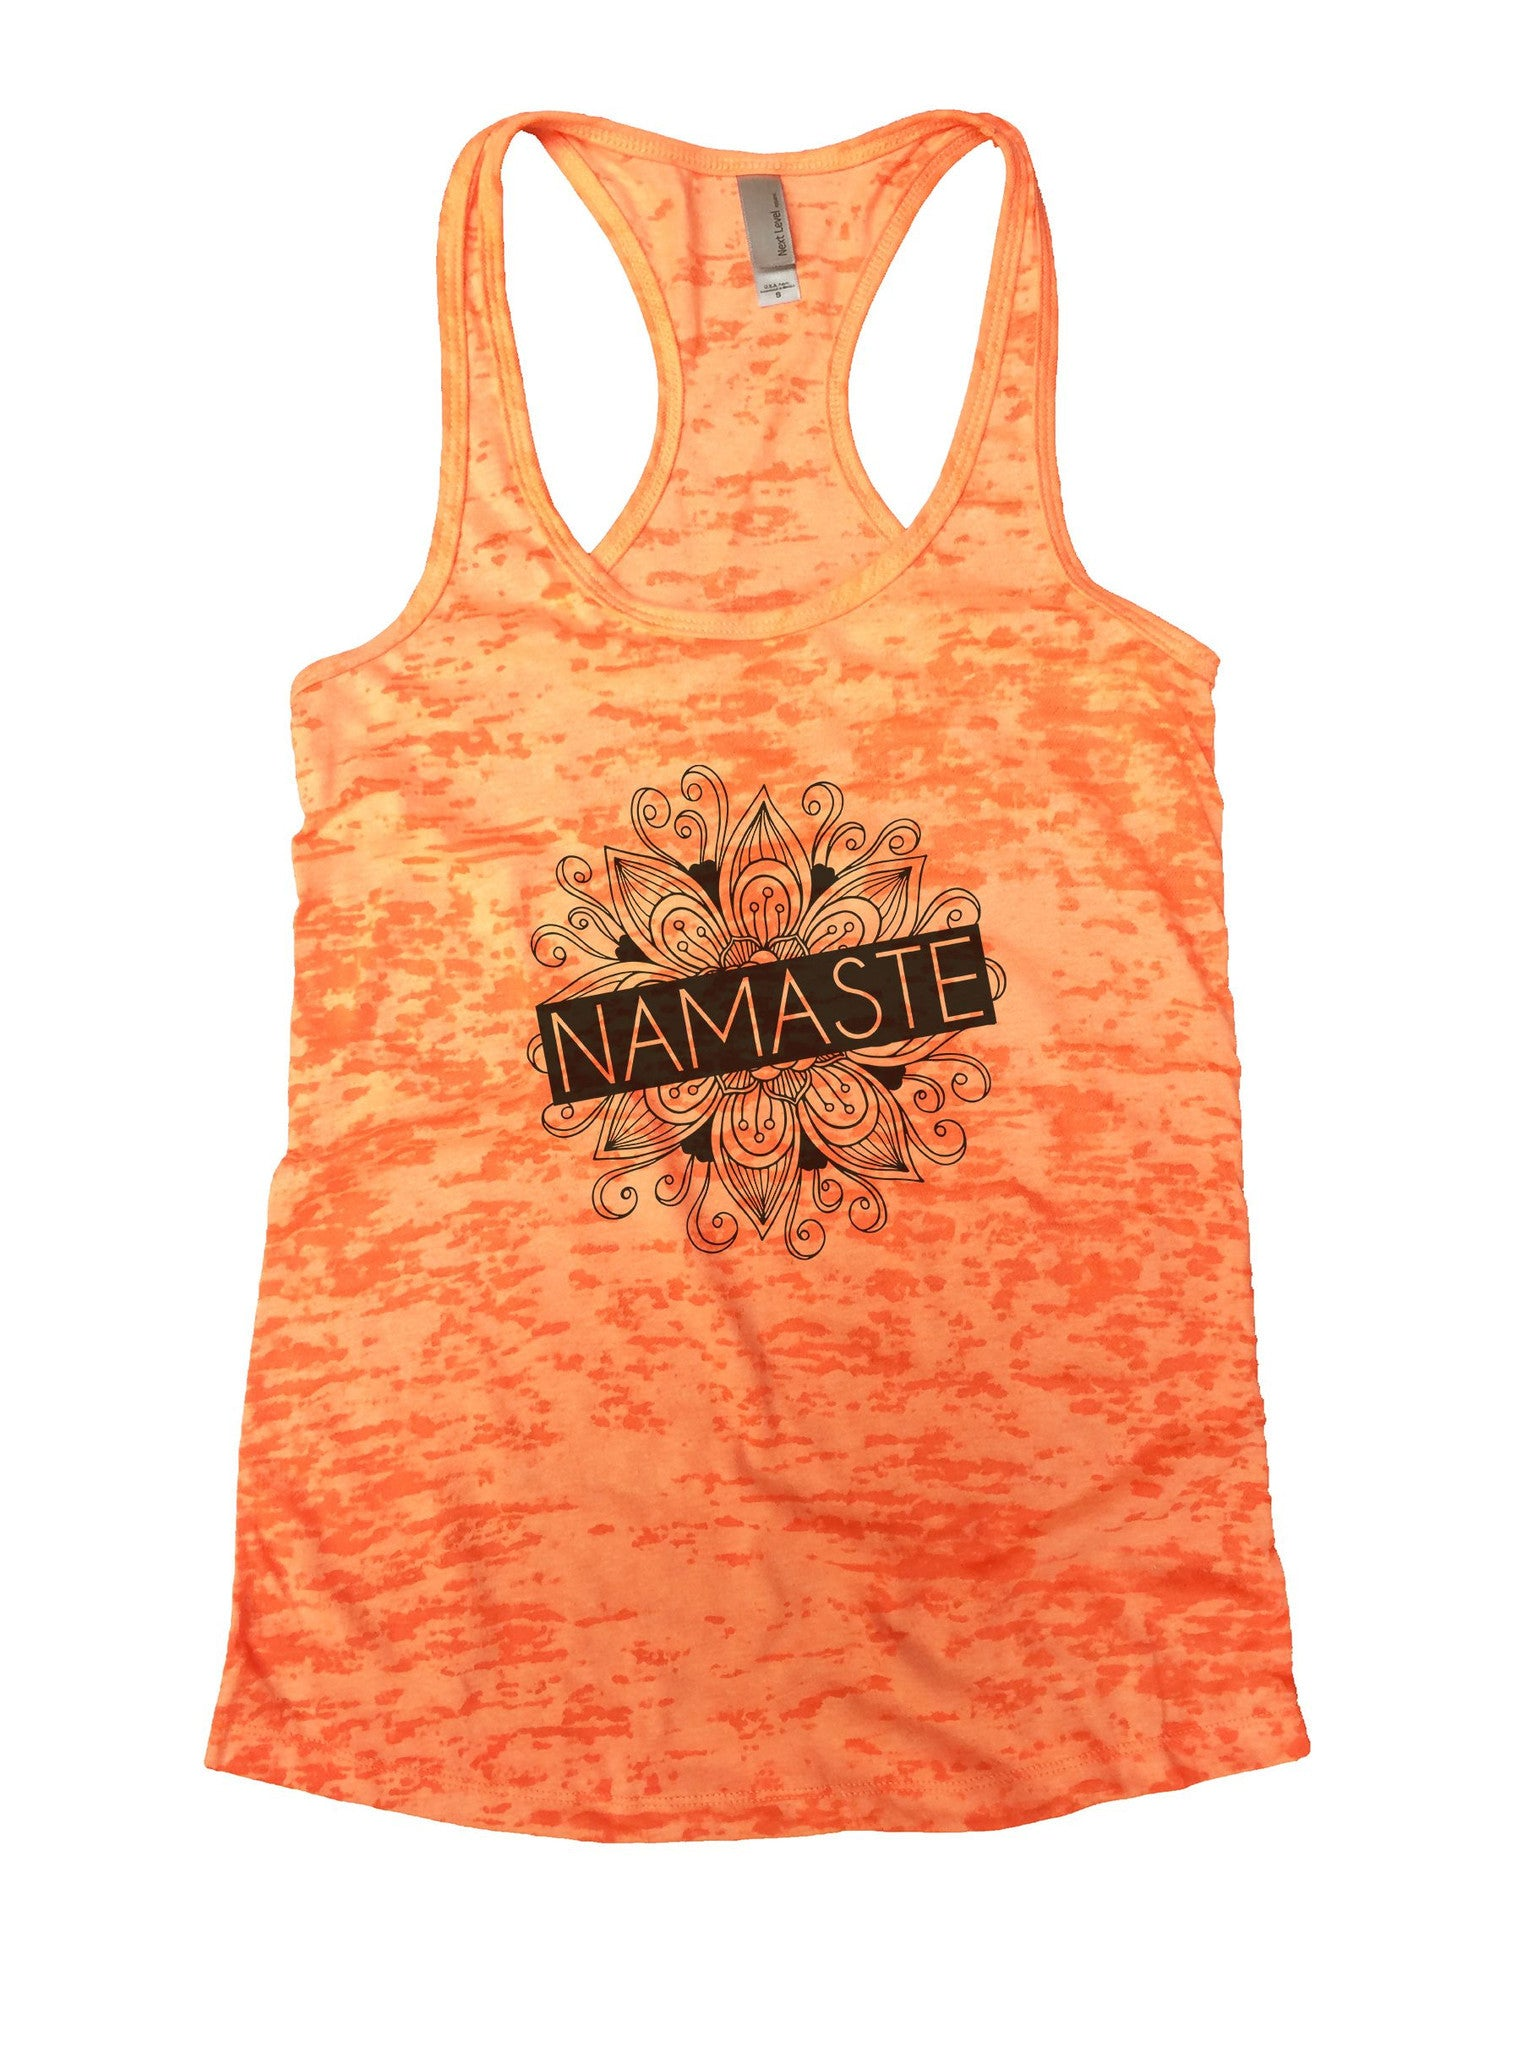 Namaste Burnout Tank Top By BurnoutTankTops.com - 1016 - Funny Shirts Tank Tops Burnouts and Triblends  - 3